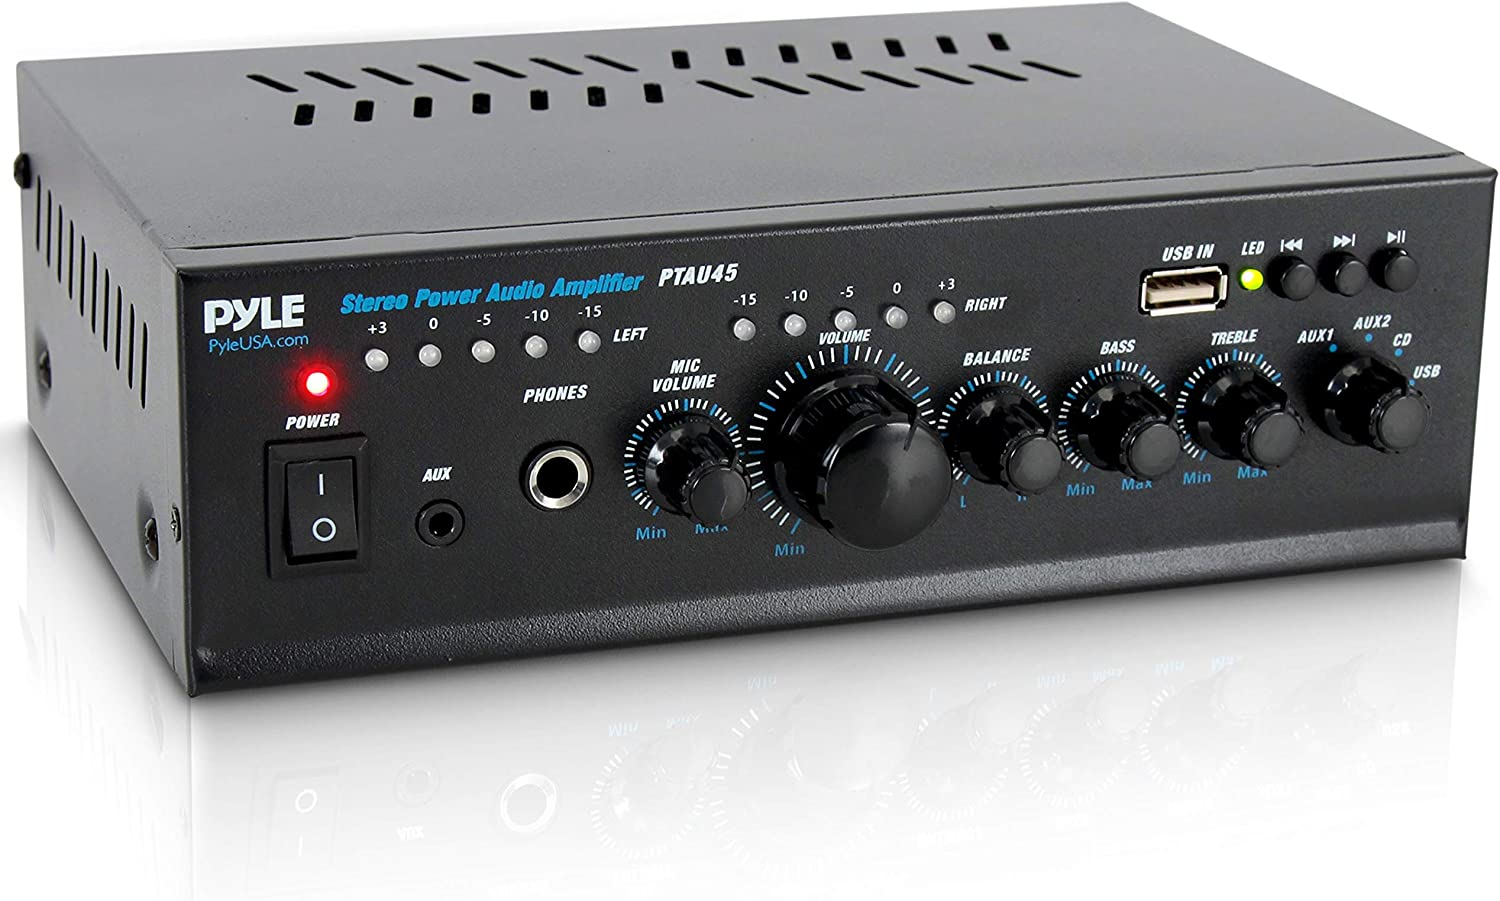 Pyle 240 Watt Home Audio Power Amplifier - Portable 2 Channel Stereo Receiver w/USB Cd DVD, MP3, iPhone, Phone, Theater, PA Amp Ptau45.5